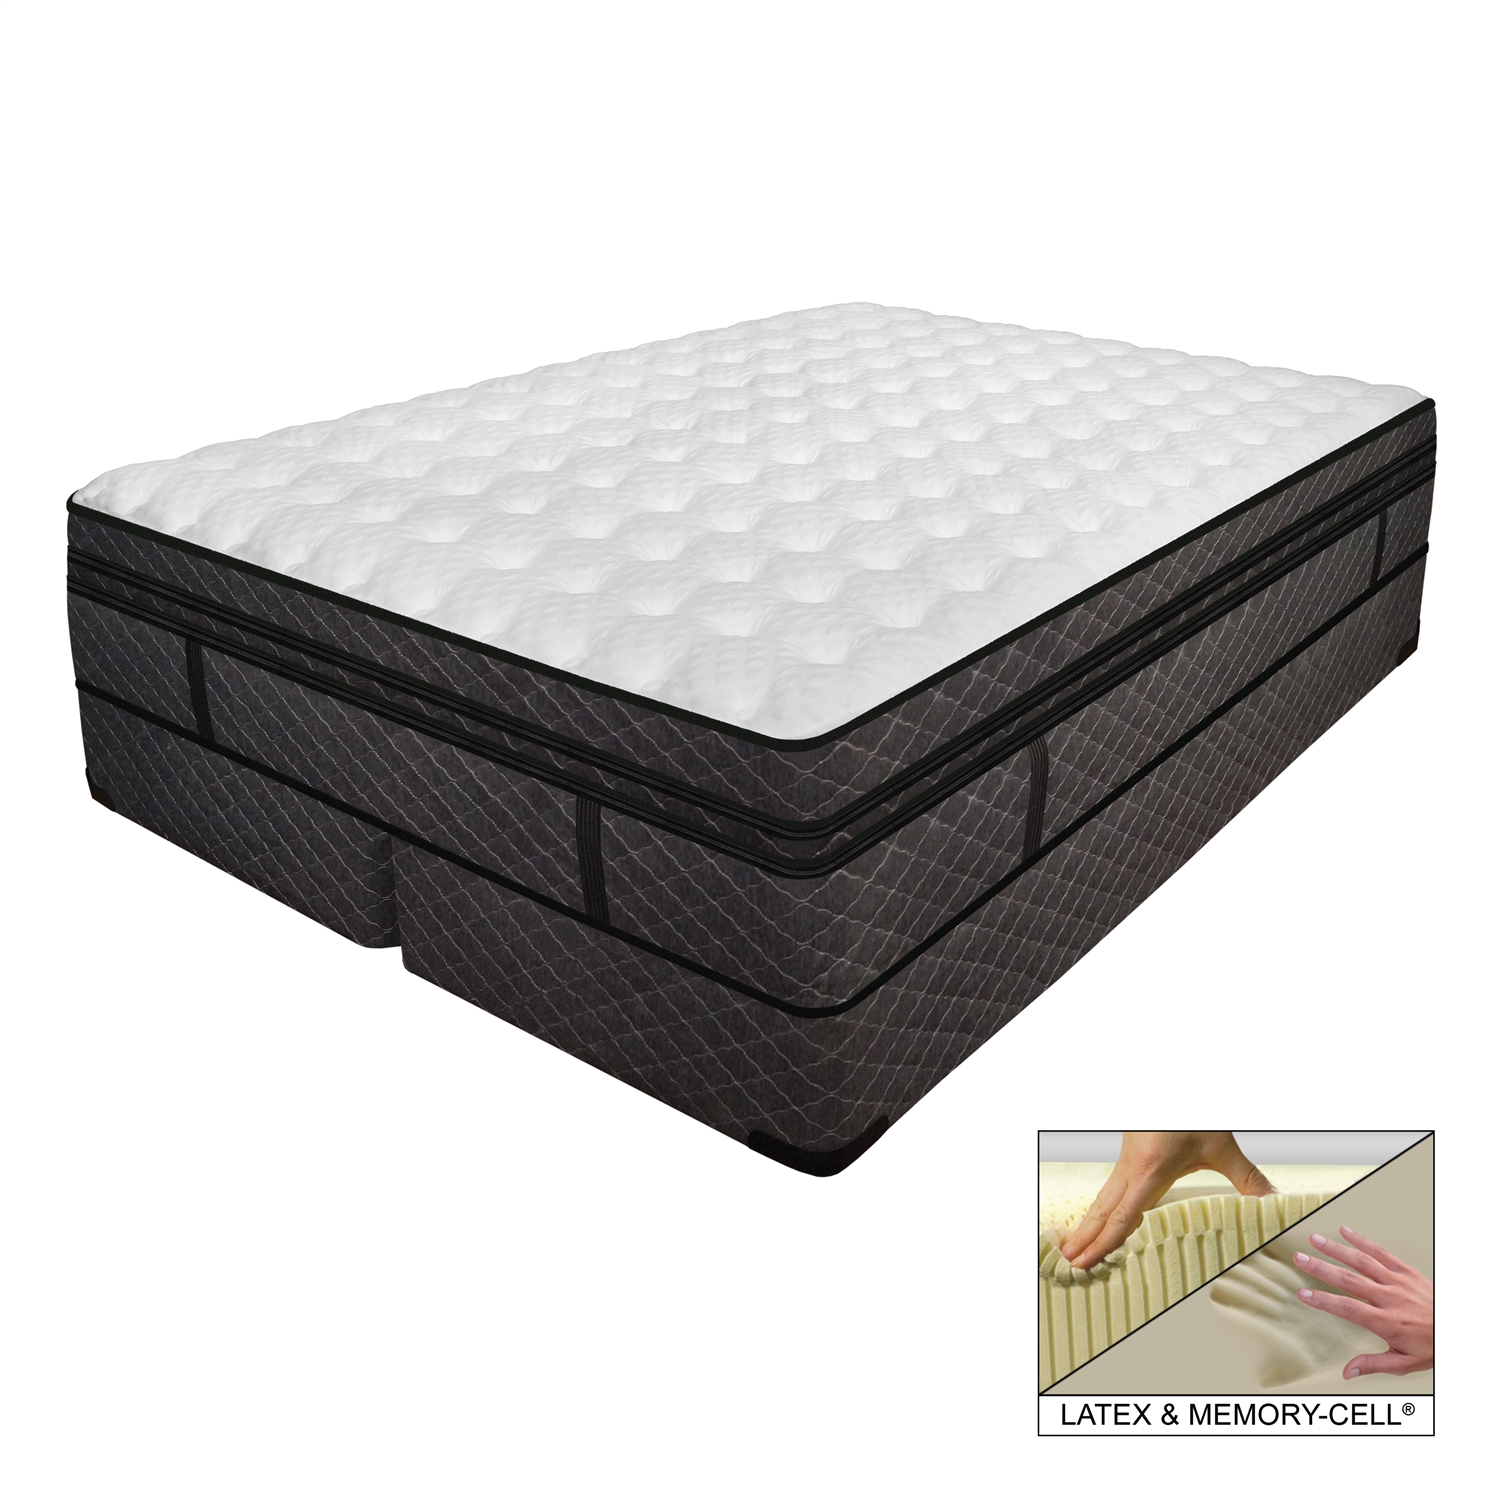 All About King Size Waterbed Mattress WaterbedOutlet.com